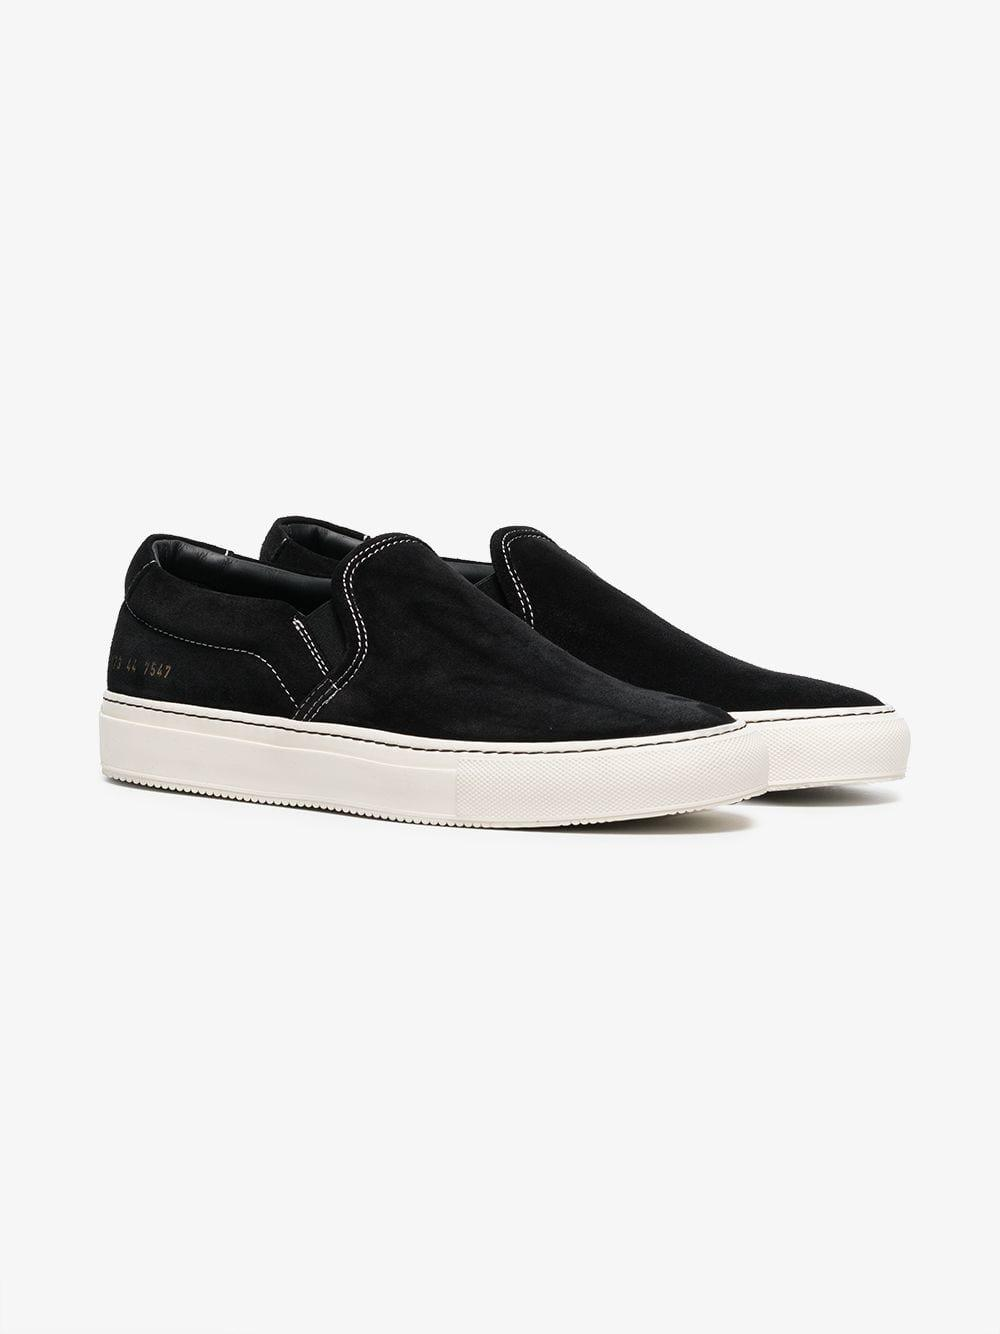 d3c10702542d Common Projects - Black Slip-on Sneakers for Men - Lyst. View fullscreen